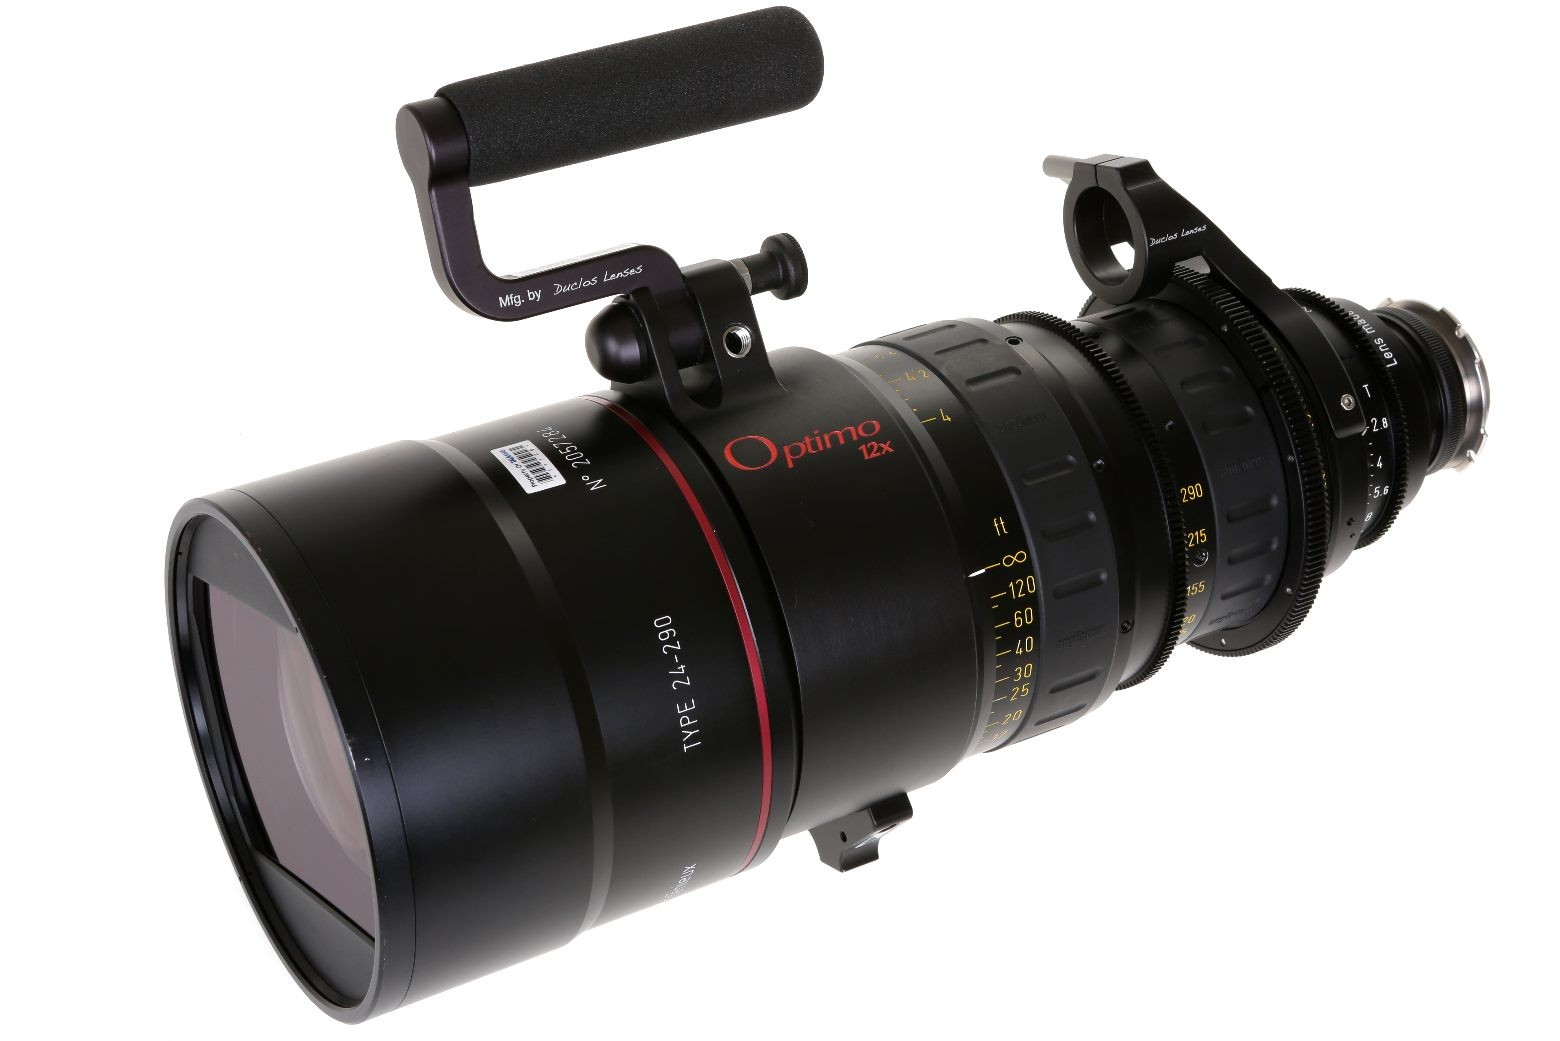 ZOOM ANGENIEUX OPTIMO 24-290 mm T 2.8